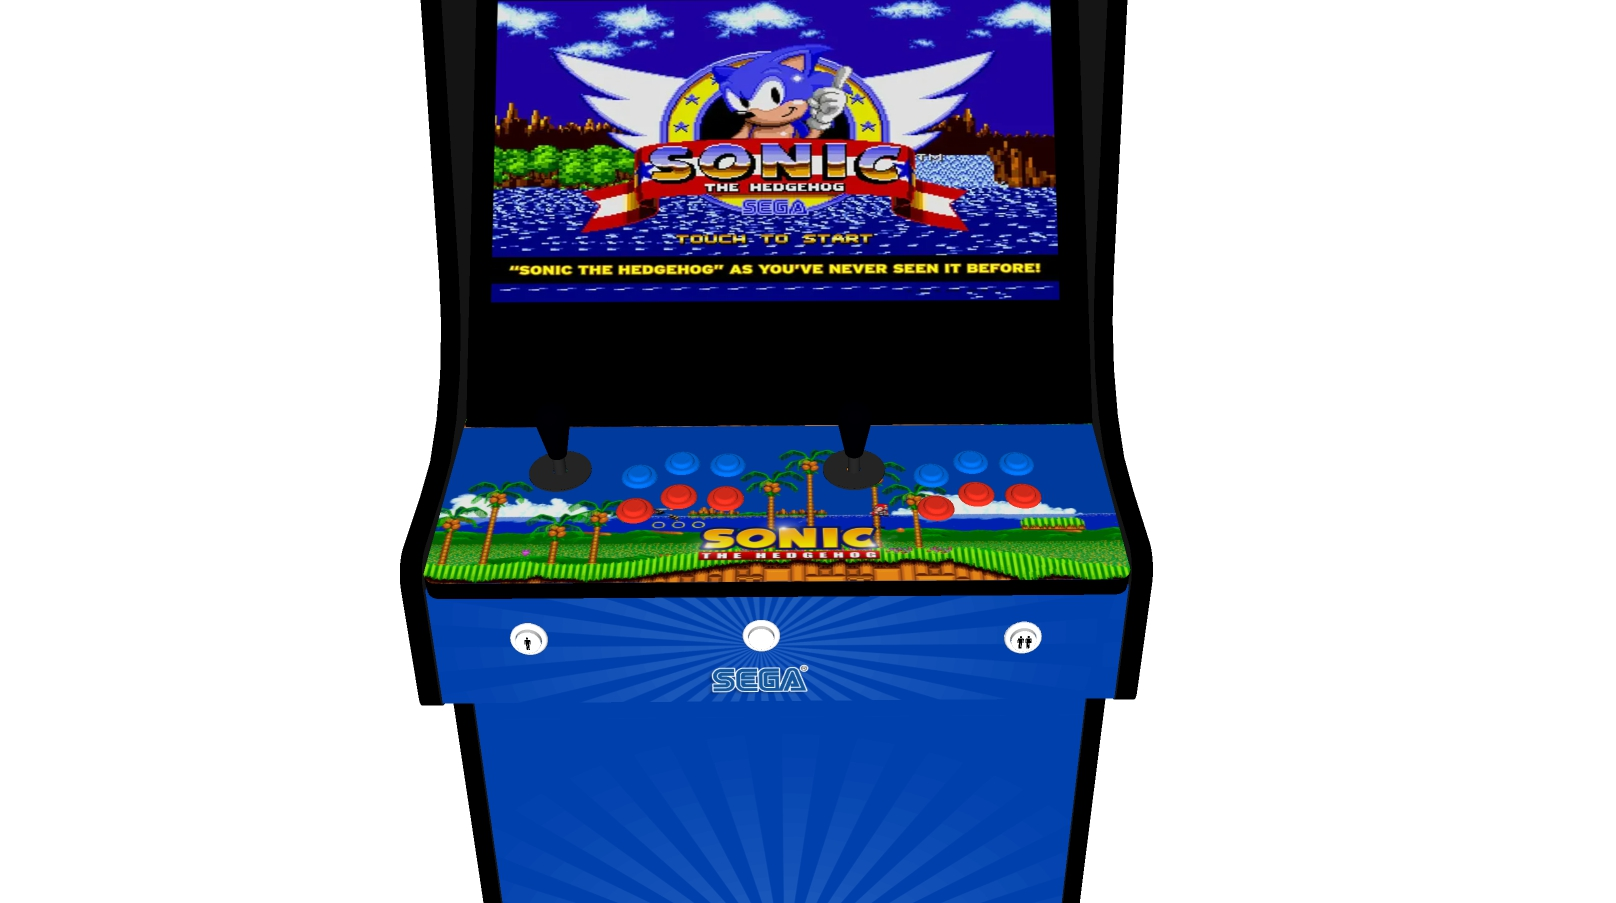 Classic Upright Arcade Machine - Sonic The Hedgehog Theme - Buttons